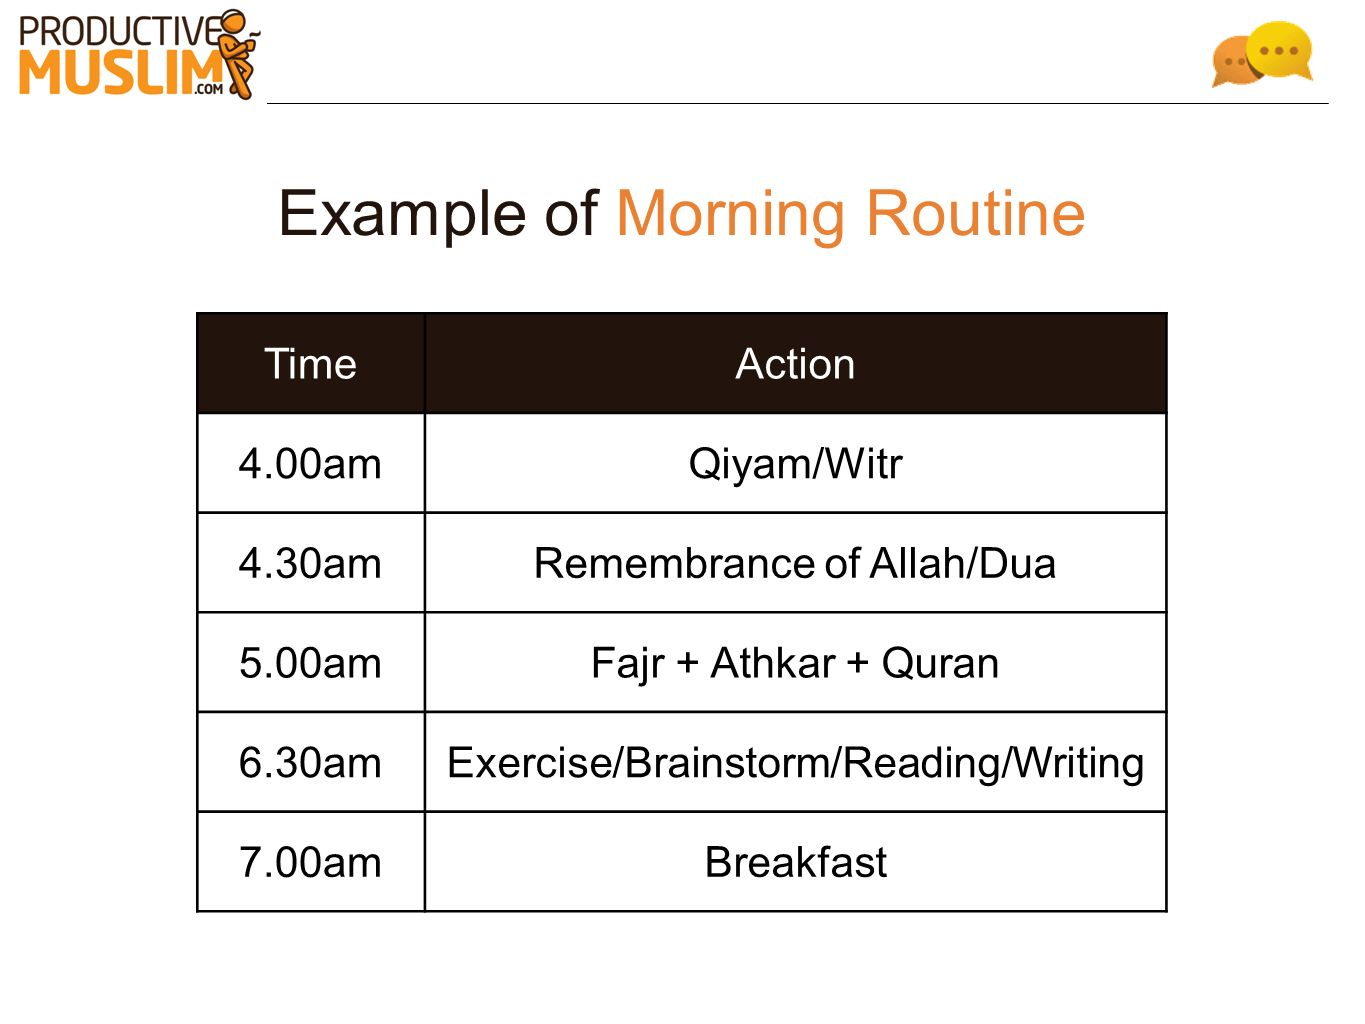 Example of Morning Routine